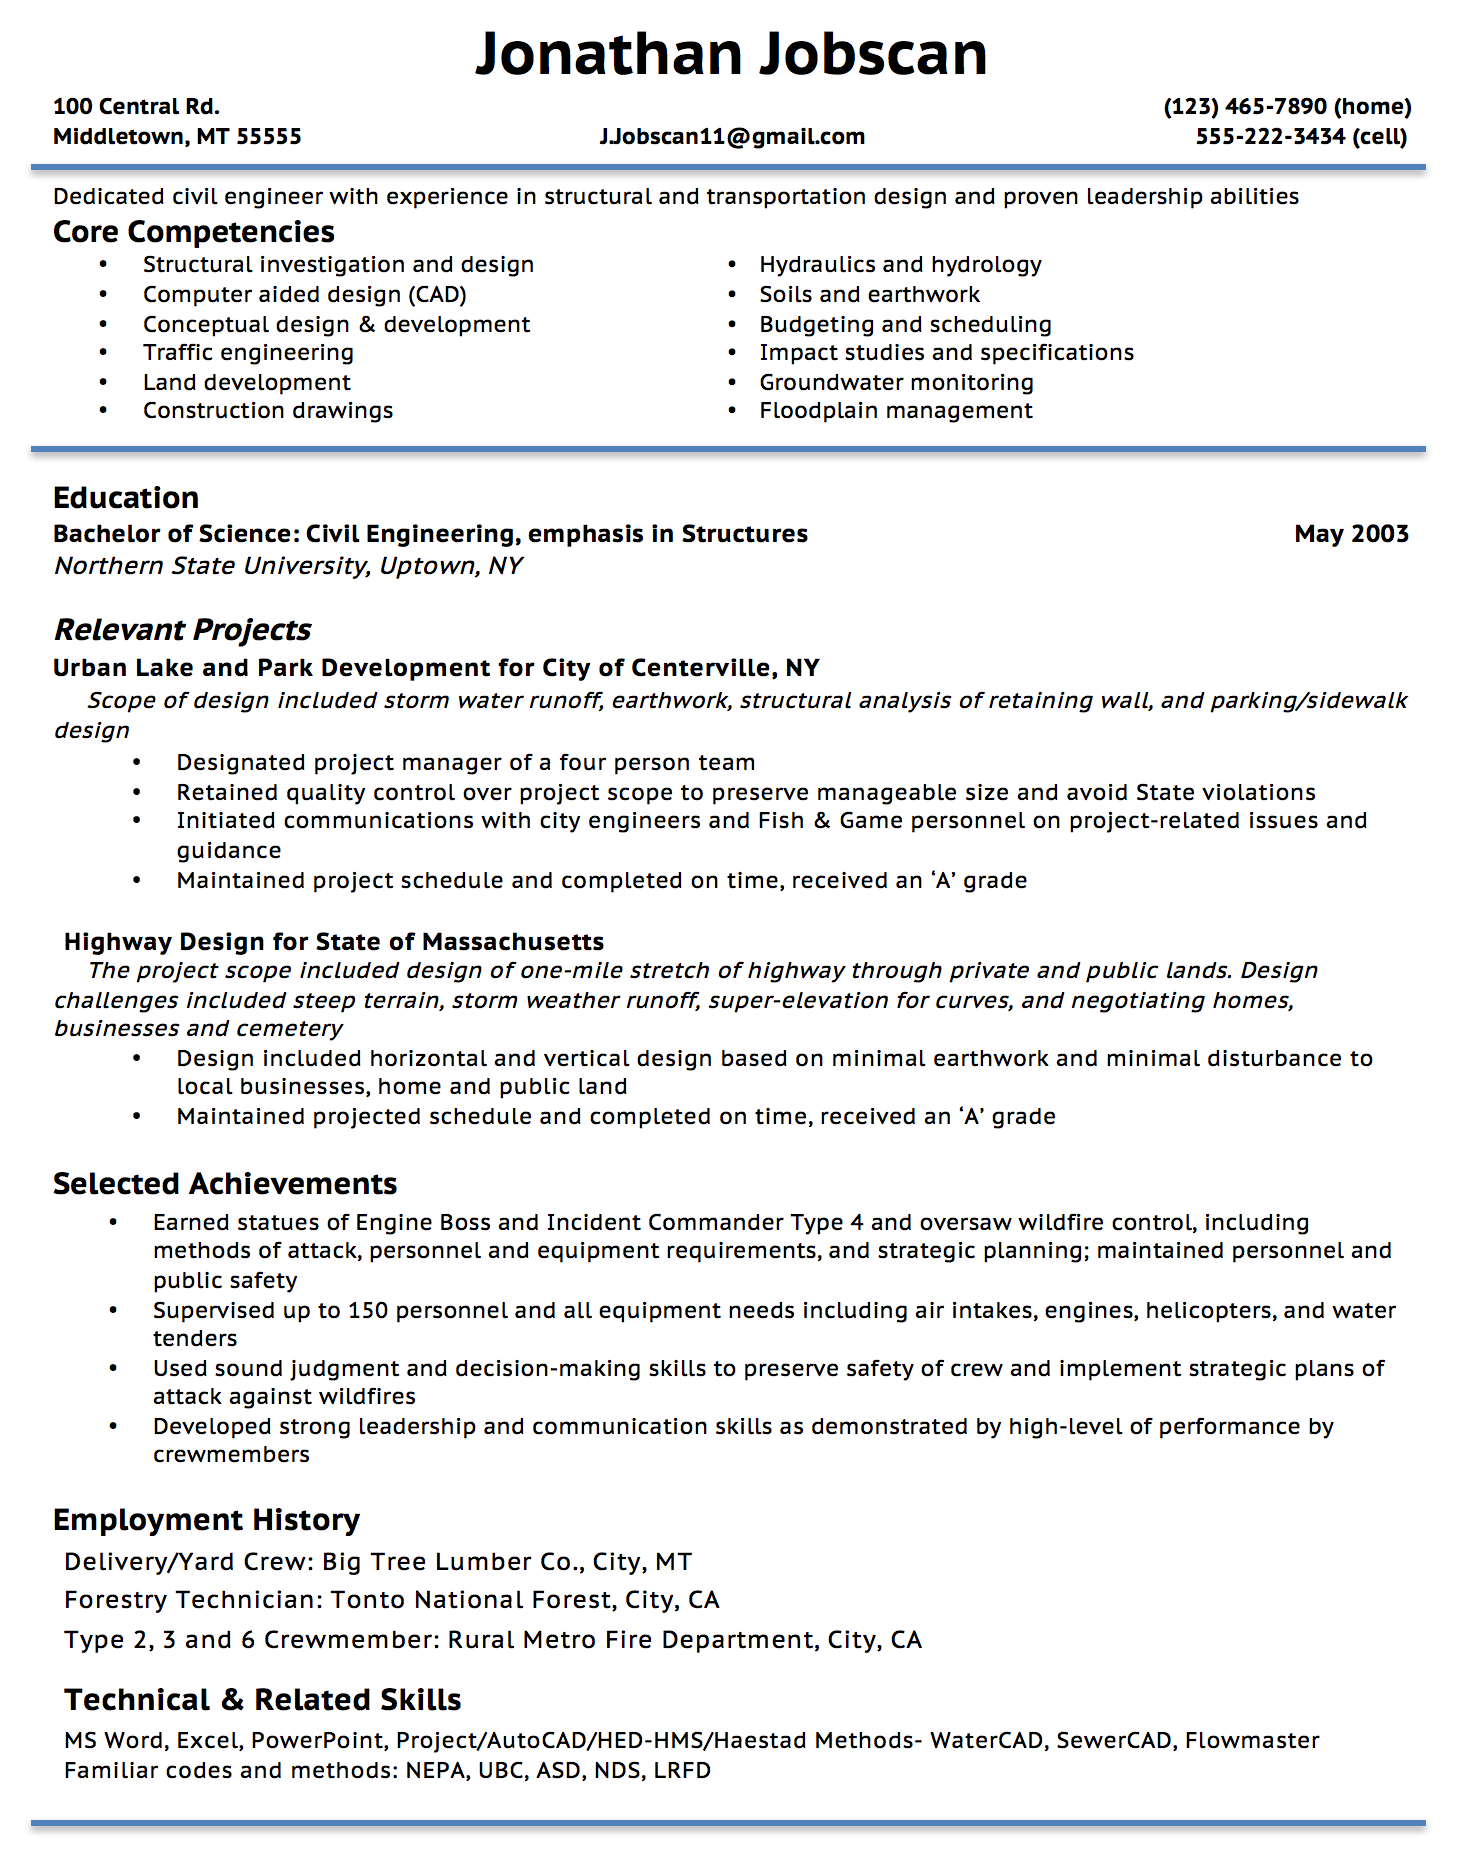 Picnictoimpeachus  Personable Resume Writing Guide  Jobscan With Luxury Example Of A Functional Resume Format With Archaic Marketing Assistant Resume Also Best Resume Templates Free In Addition Good Resume Font And Free Examples Of Resumes As Well As Direct Support Professional Resume Additionally Power Verbs For Resume From Jobscanco With Picnictoimpeachus  Luxury Resume Writing Guide  Jobscan With Archaic Example Of A Functional Resume Format And Personable Marketing Assistant Resume Also Best Resume Templates Free In Addition Good Resume Font From Jobscanco